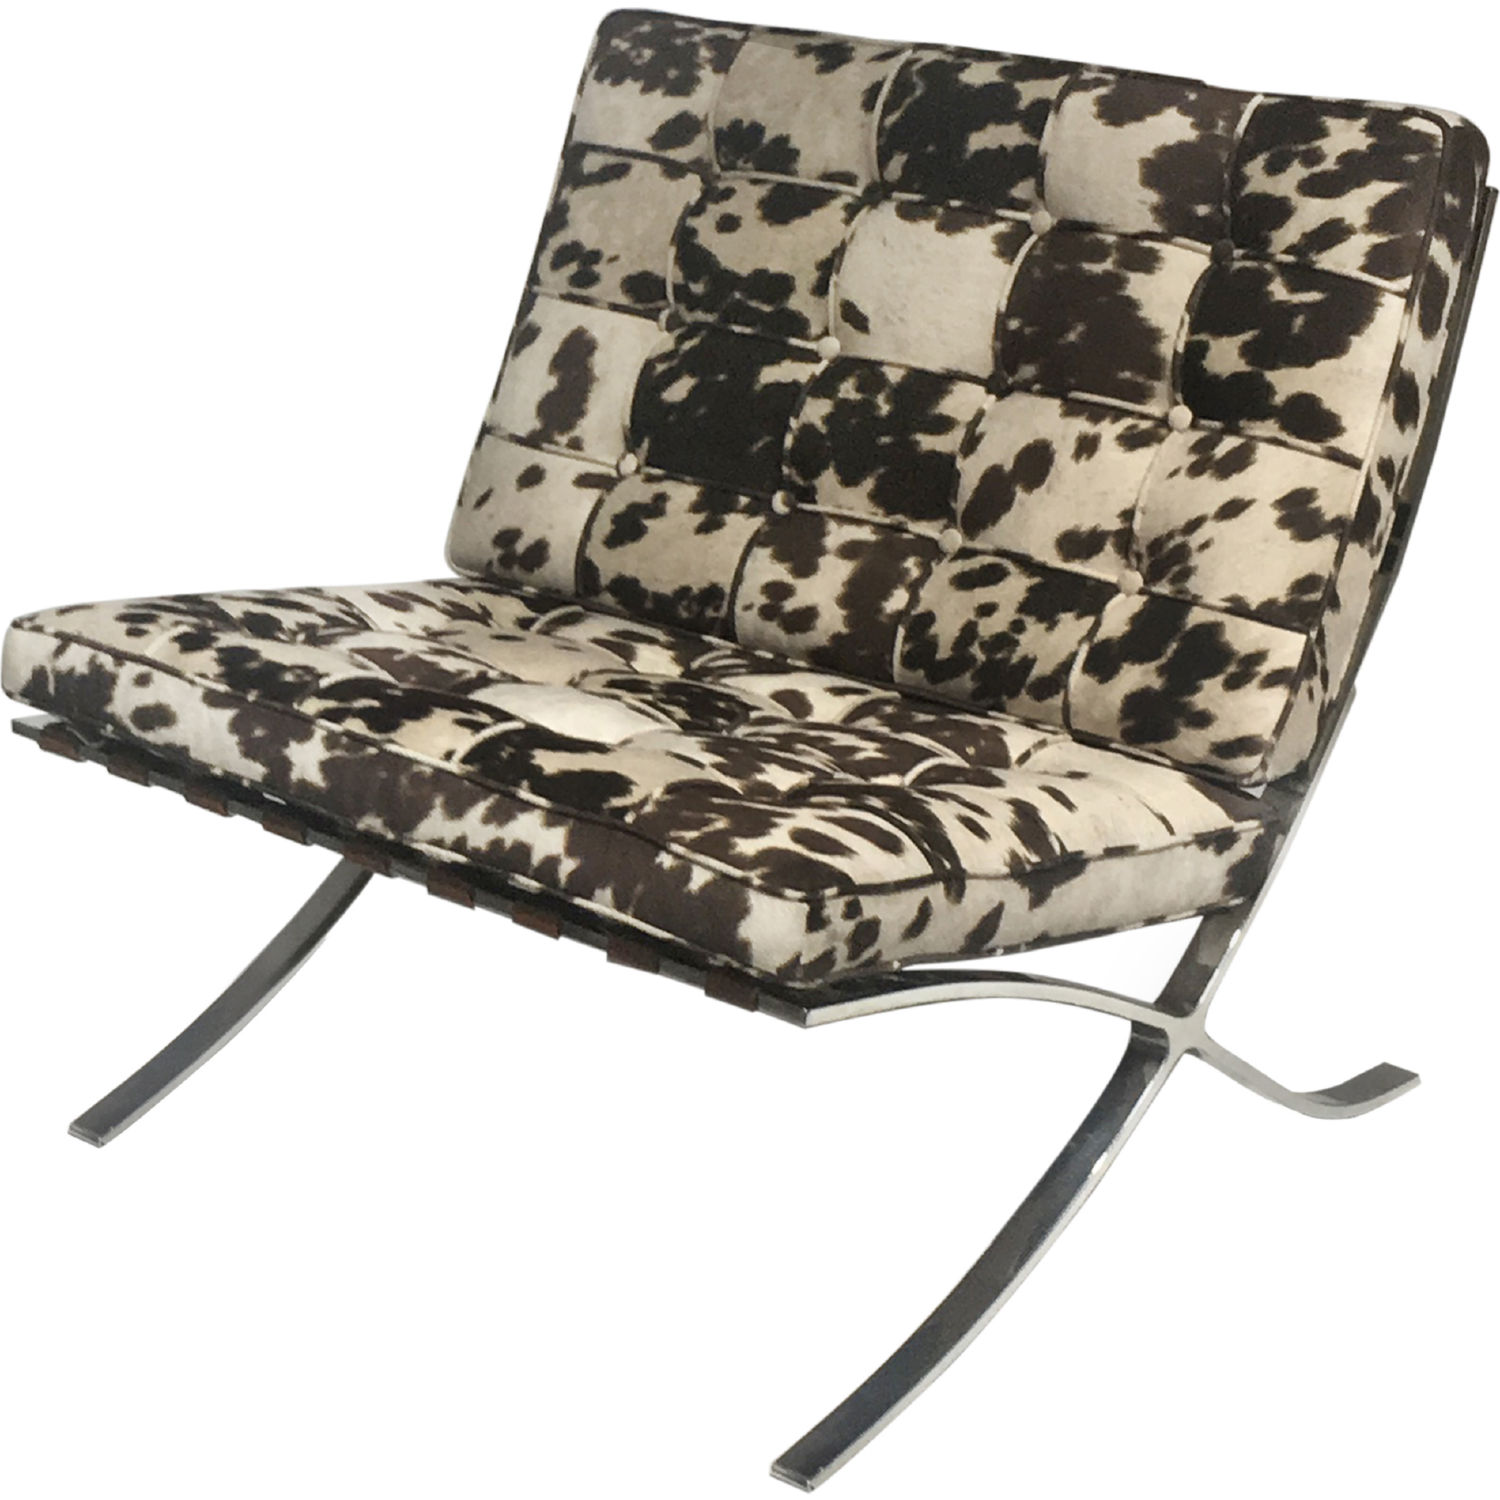 Barca Accent Chair In Brown Cow Print Fabric Brushed Stainless By New Pacific Direct